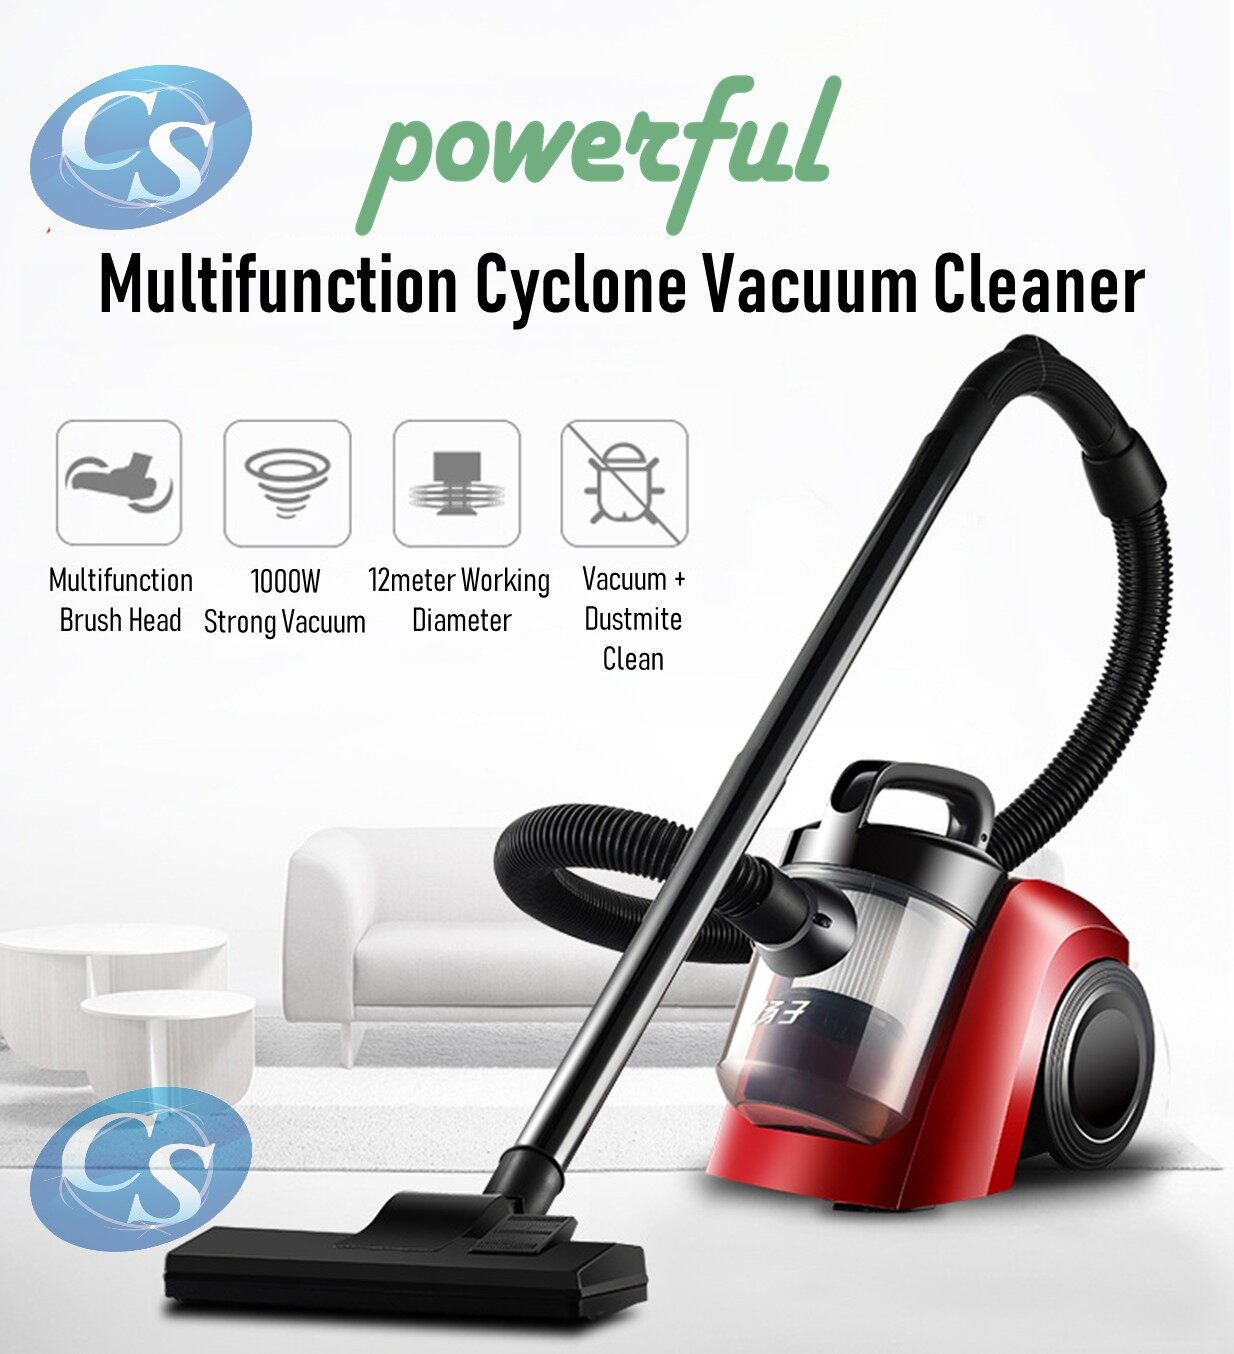 Powerful 1000W DM-001 Cyclone Vacuum Dust Acarid Dust-mite